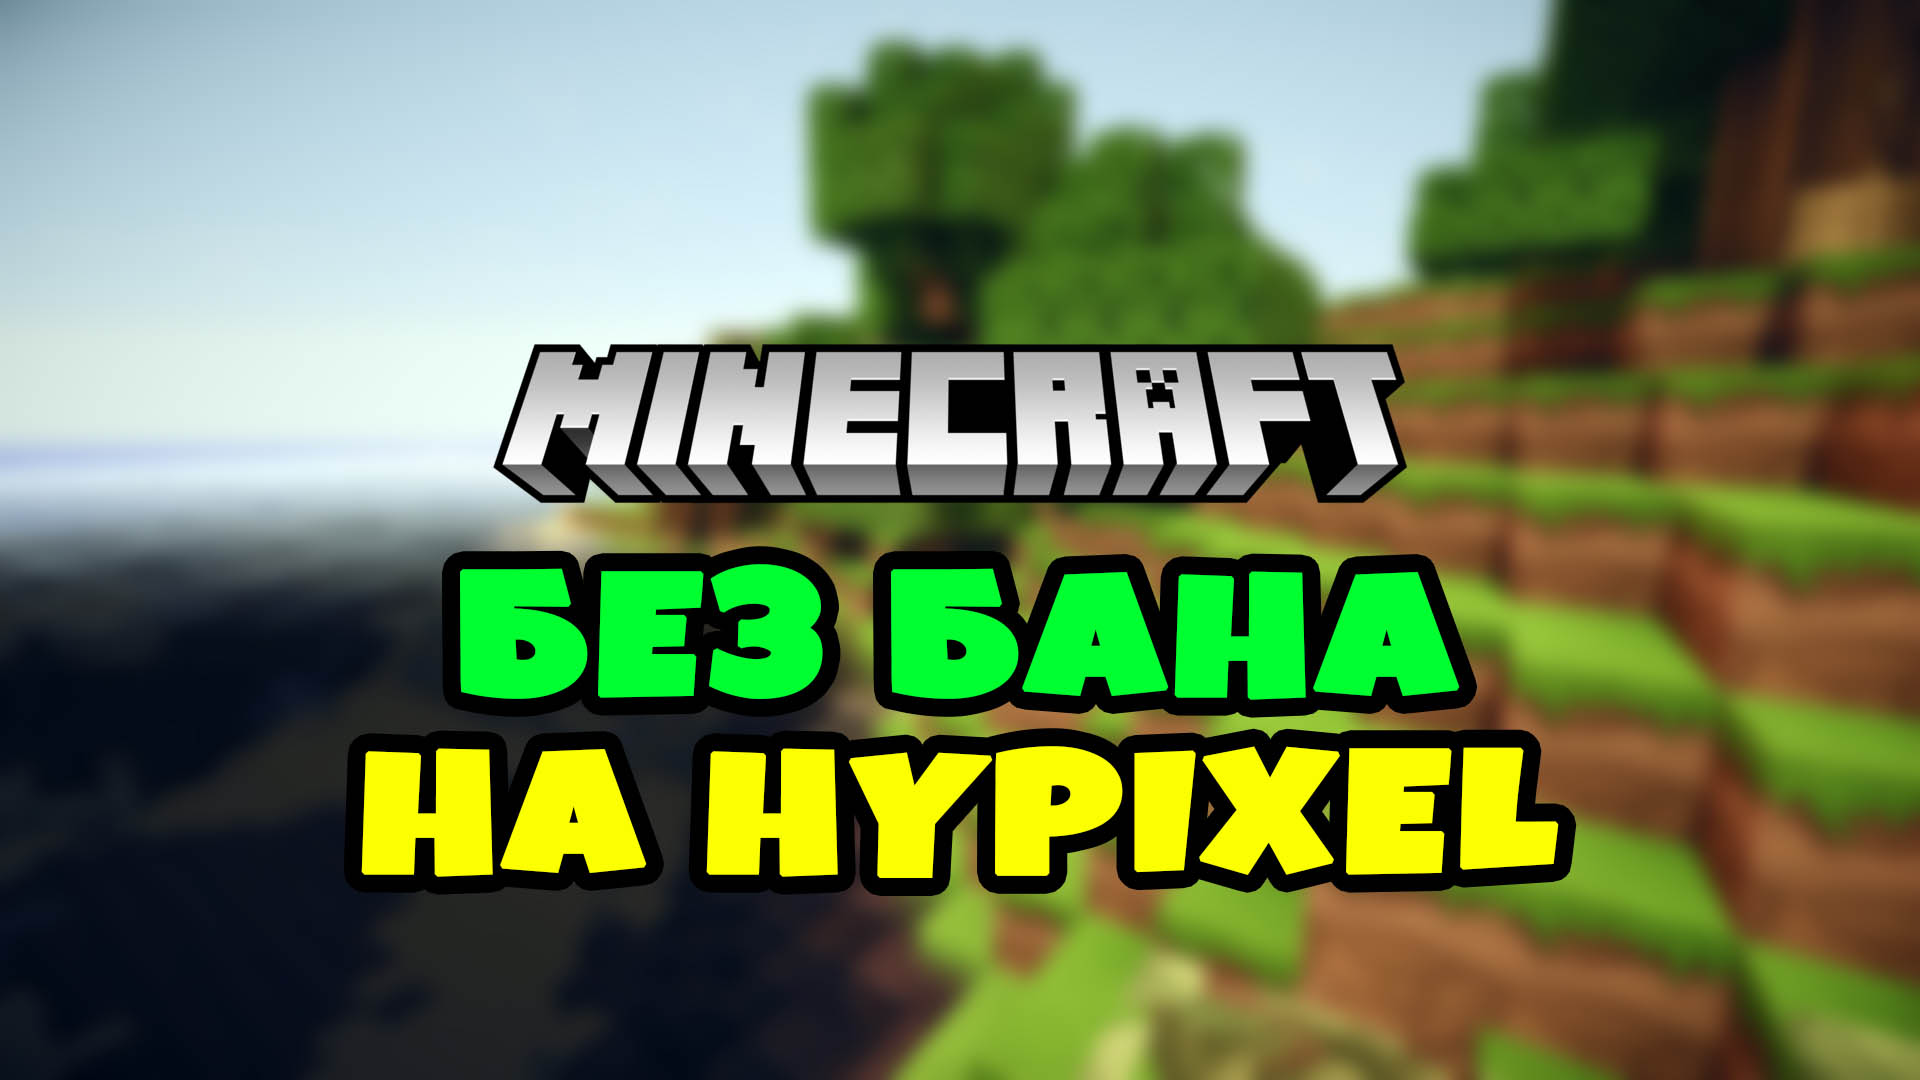 Minecraft client access and Hypixel 2019